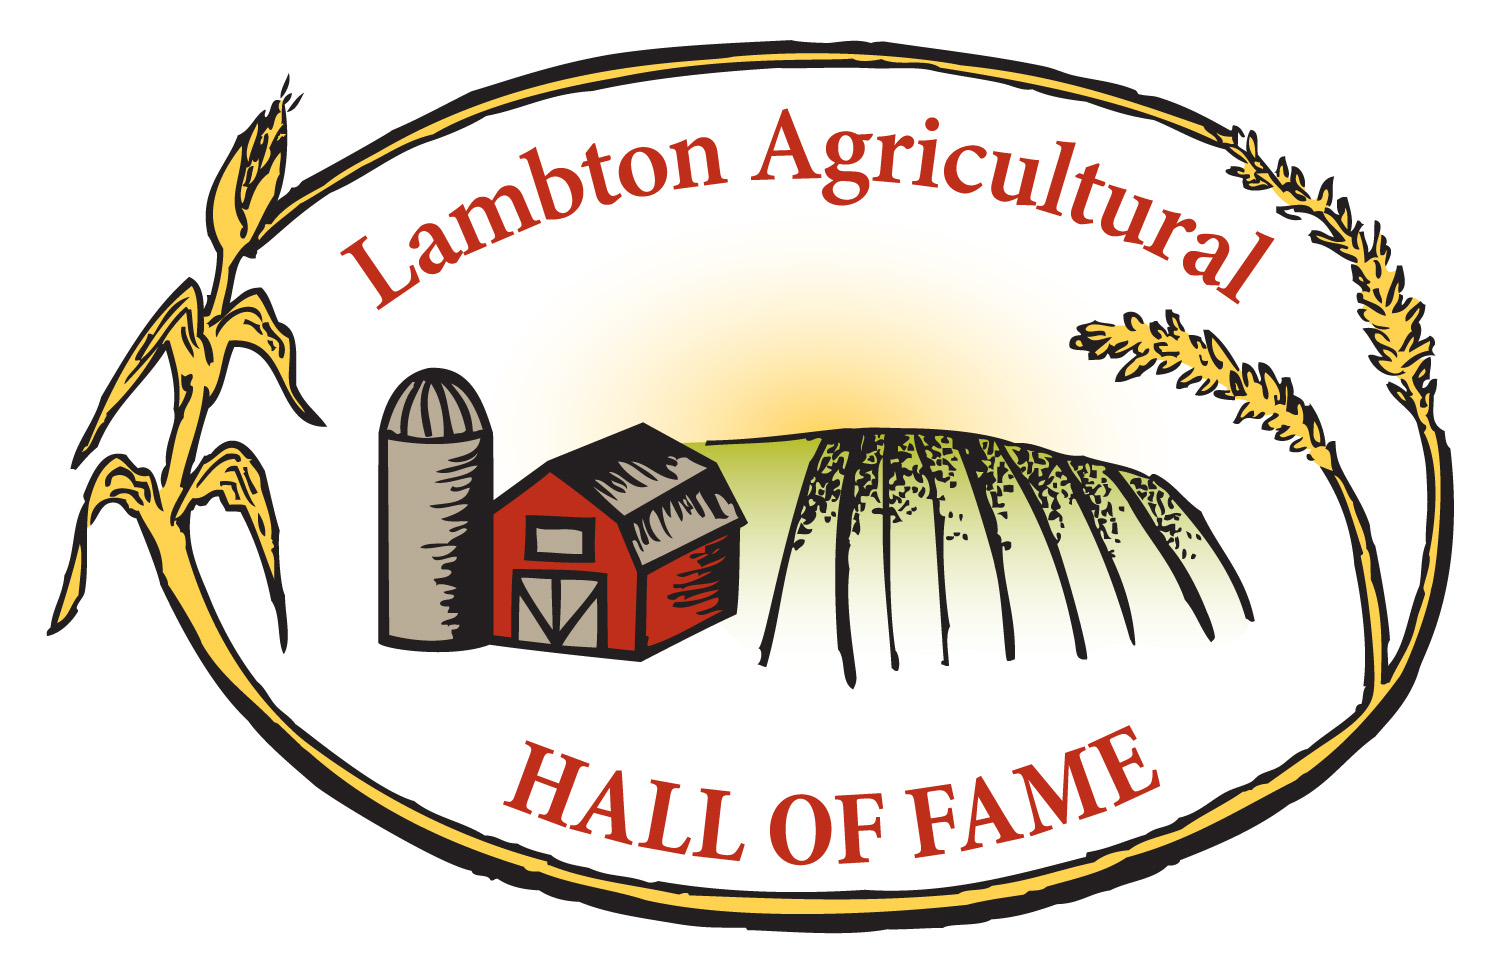 Lambton Agricultural Hall of Fame to present their annual 2019 award at the 2020 LFA AGM